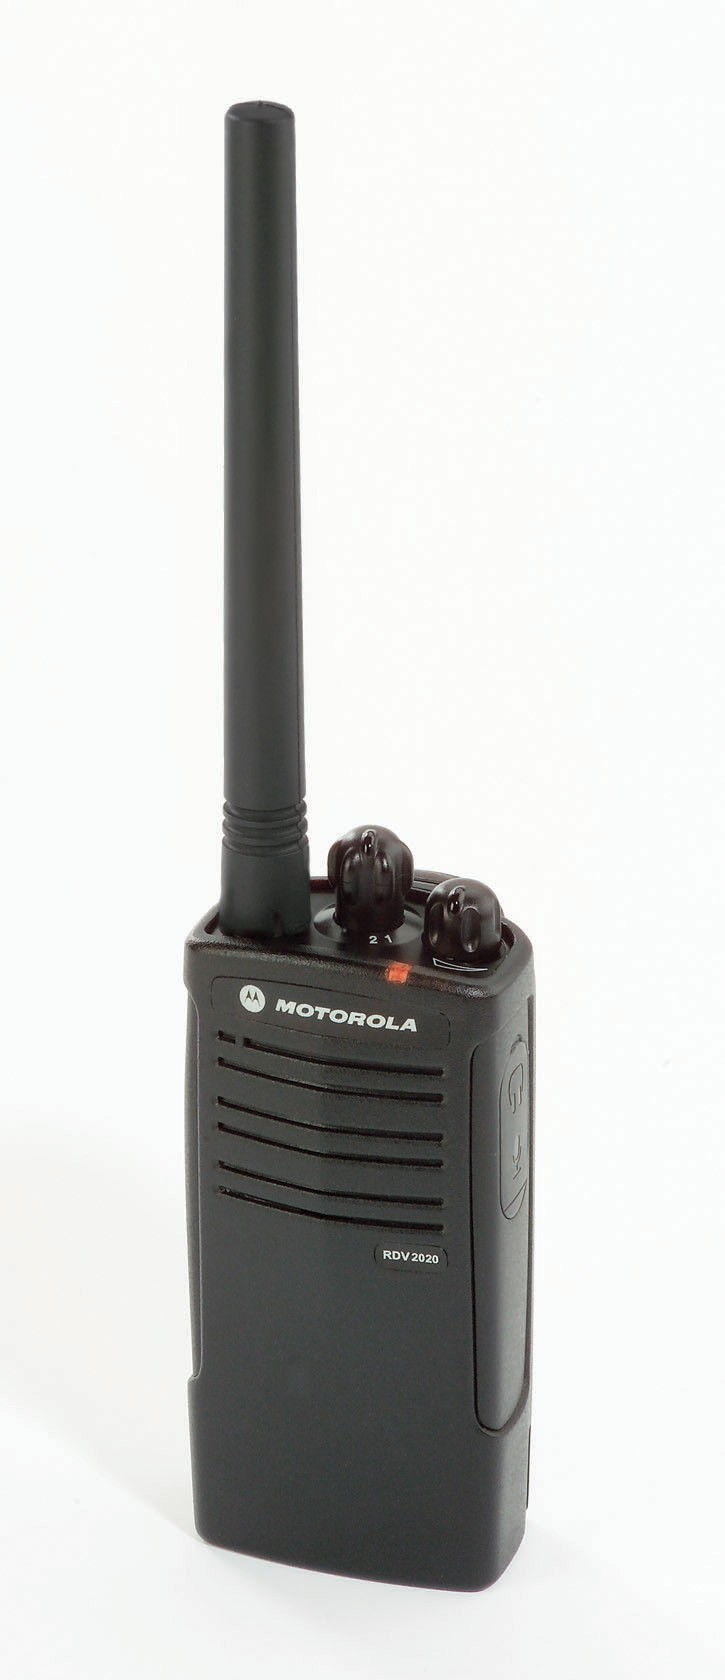 motorola rdv2020 price vhf portable radio. Black Bedroom Furniture Sets. Home Design Ideas